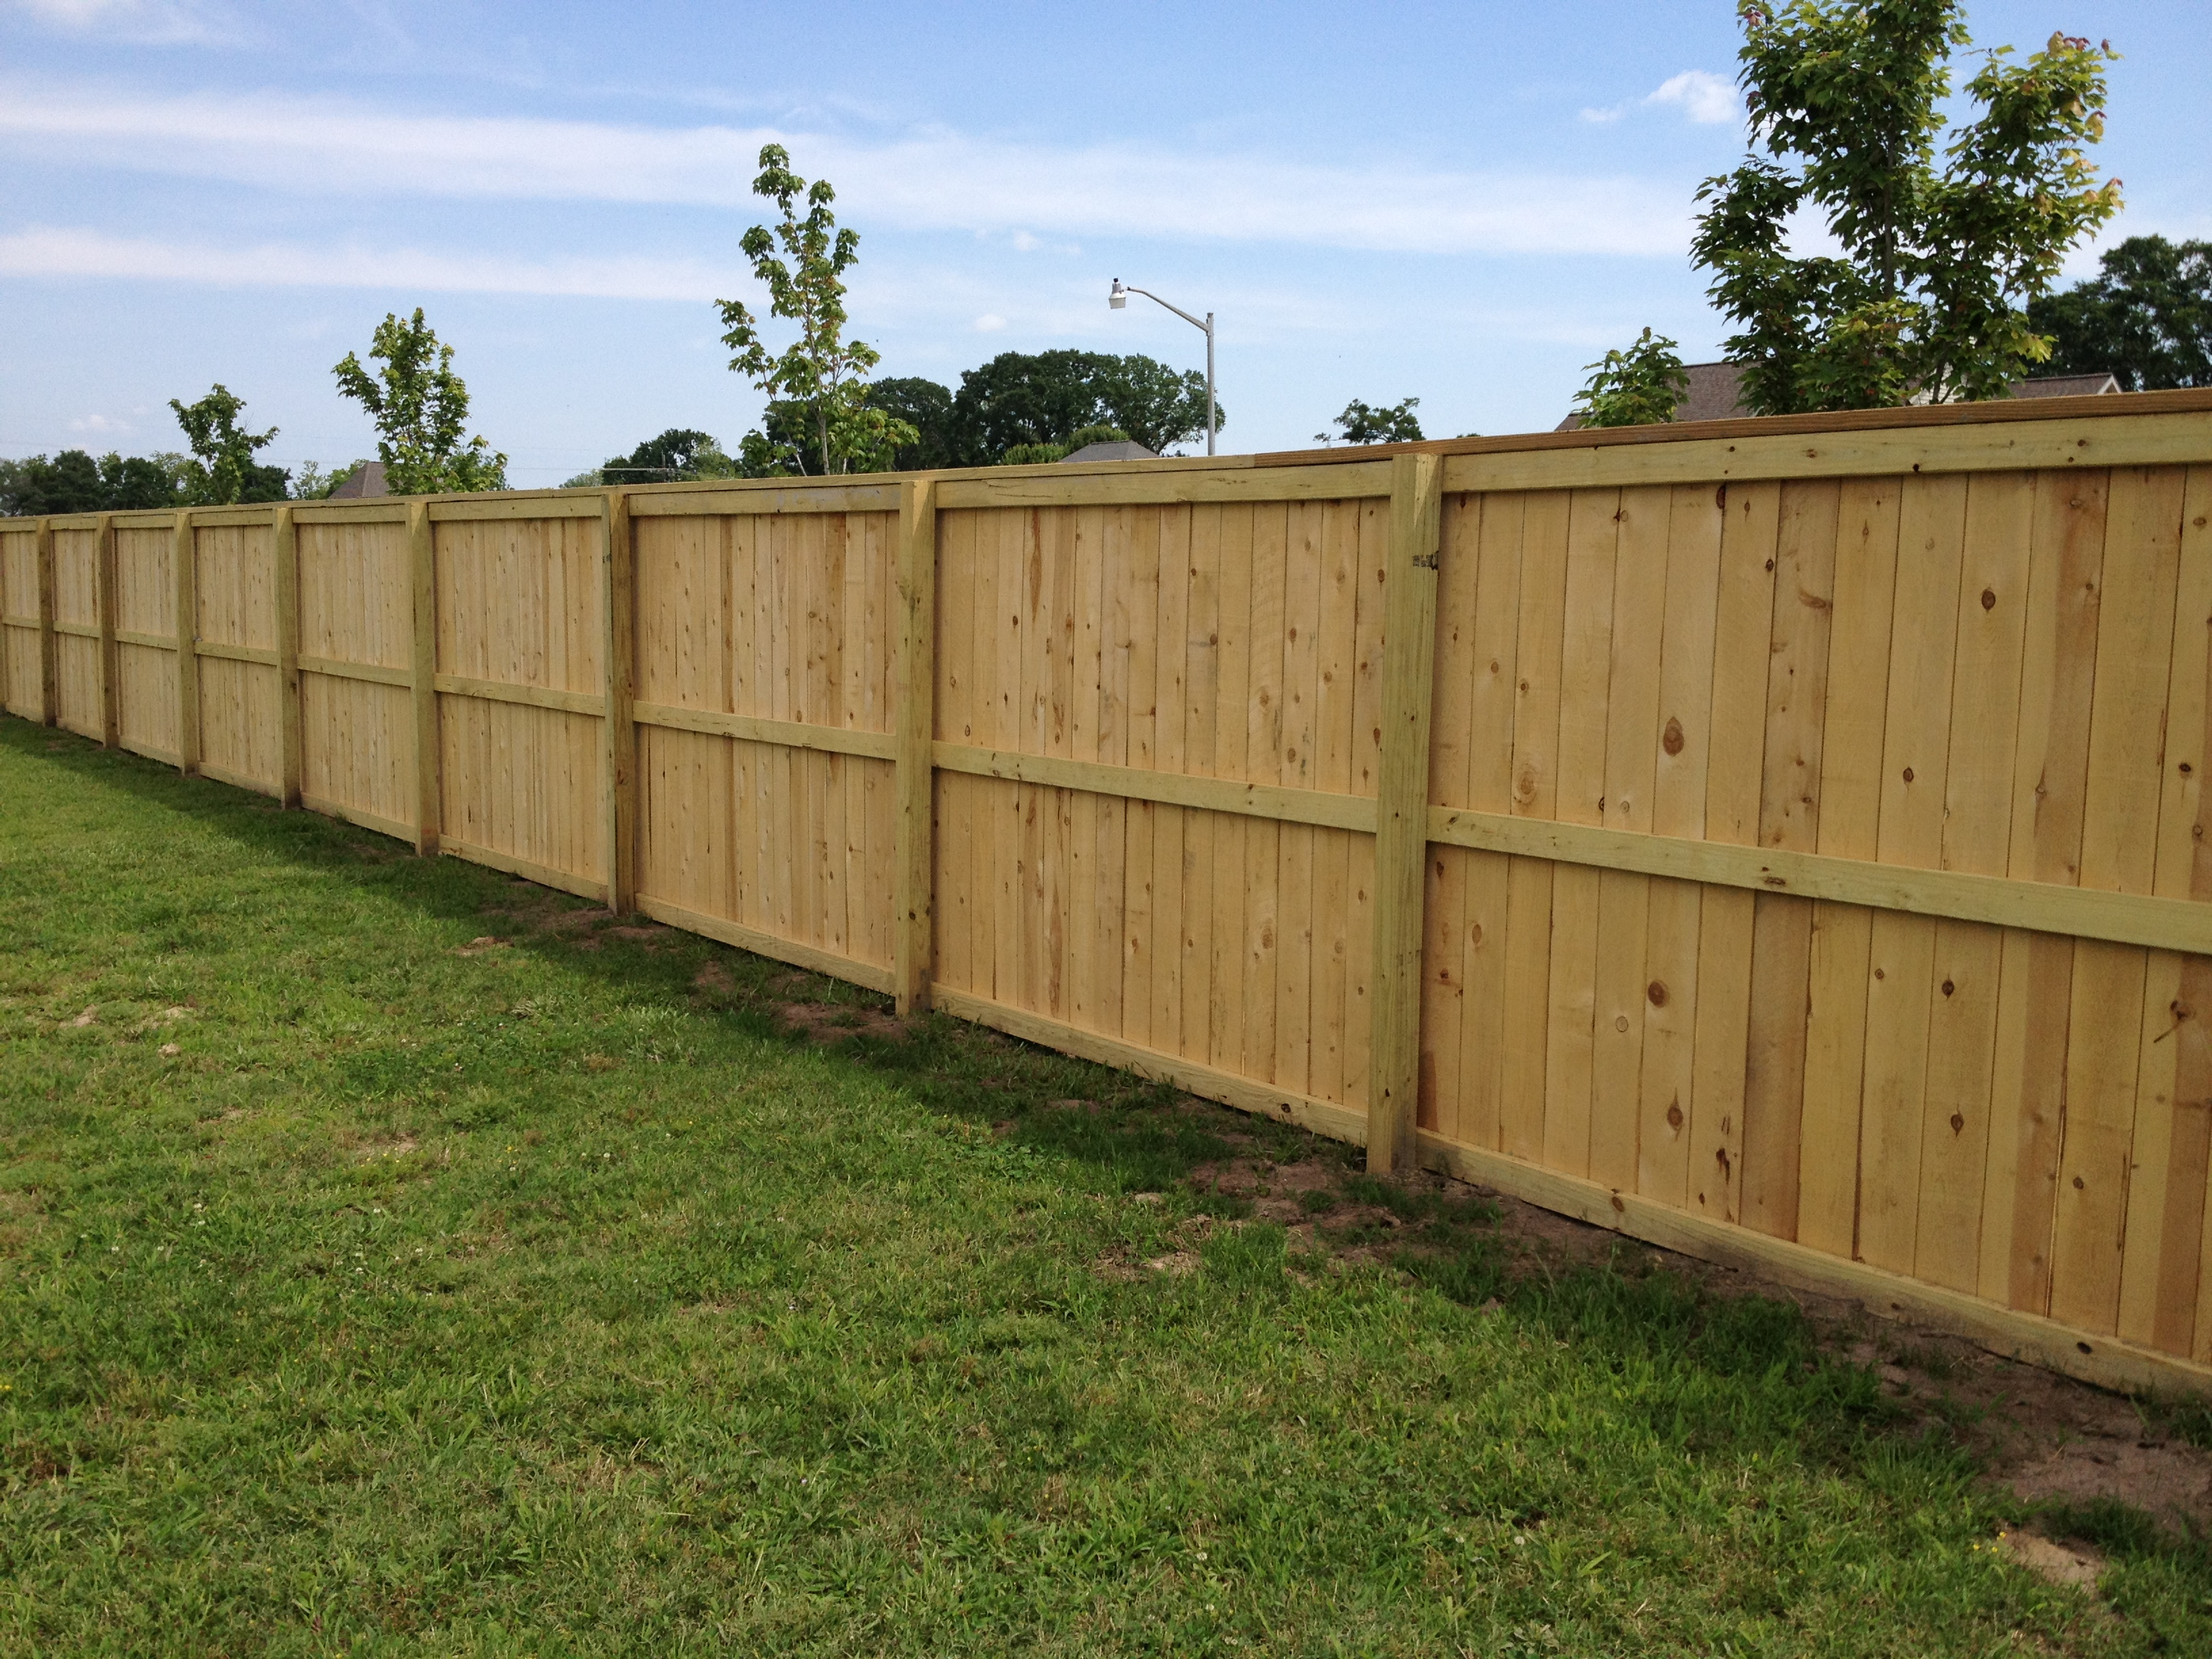 Cedar fence plans gorgeous teebro 6 w capping – markthedev.com